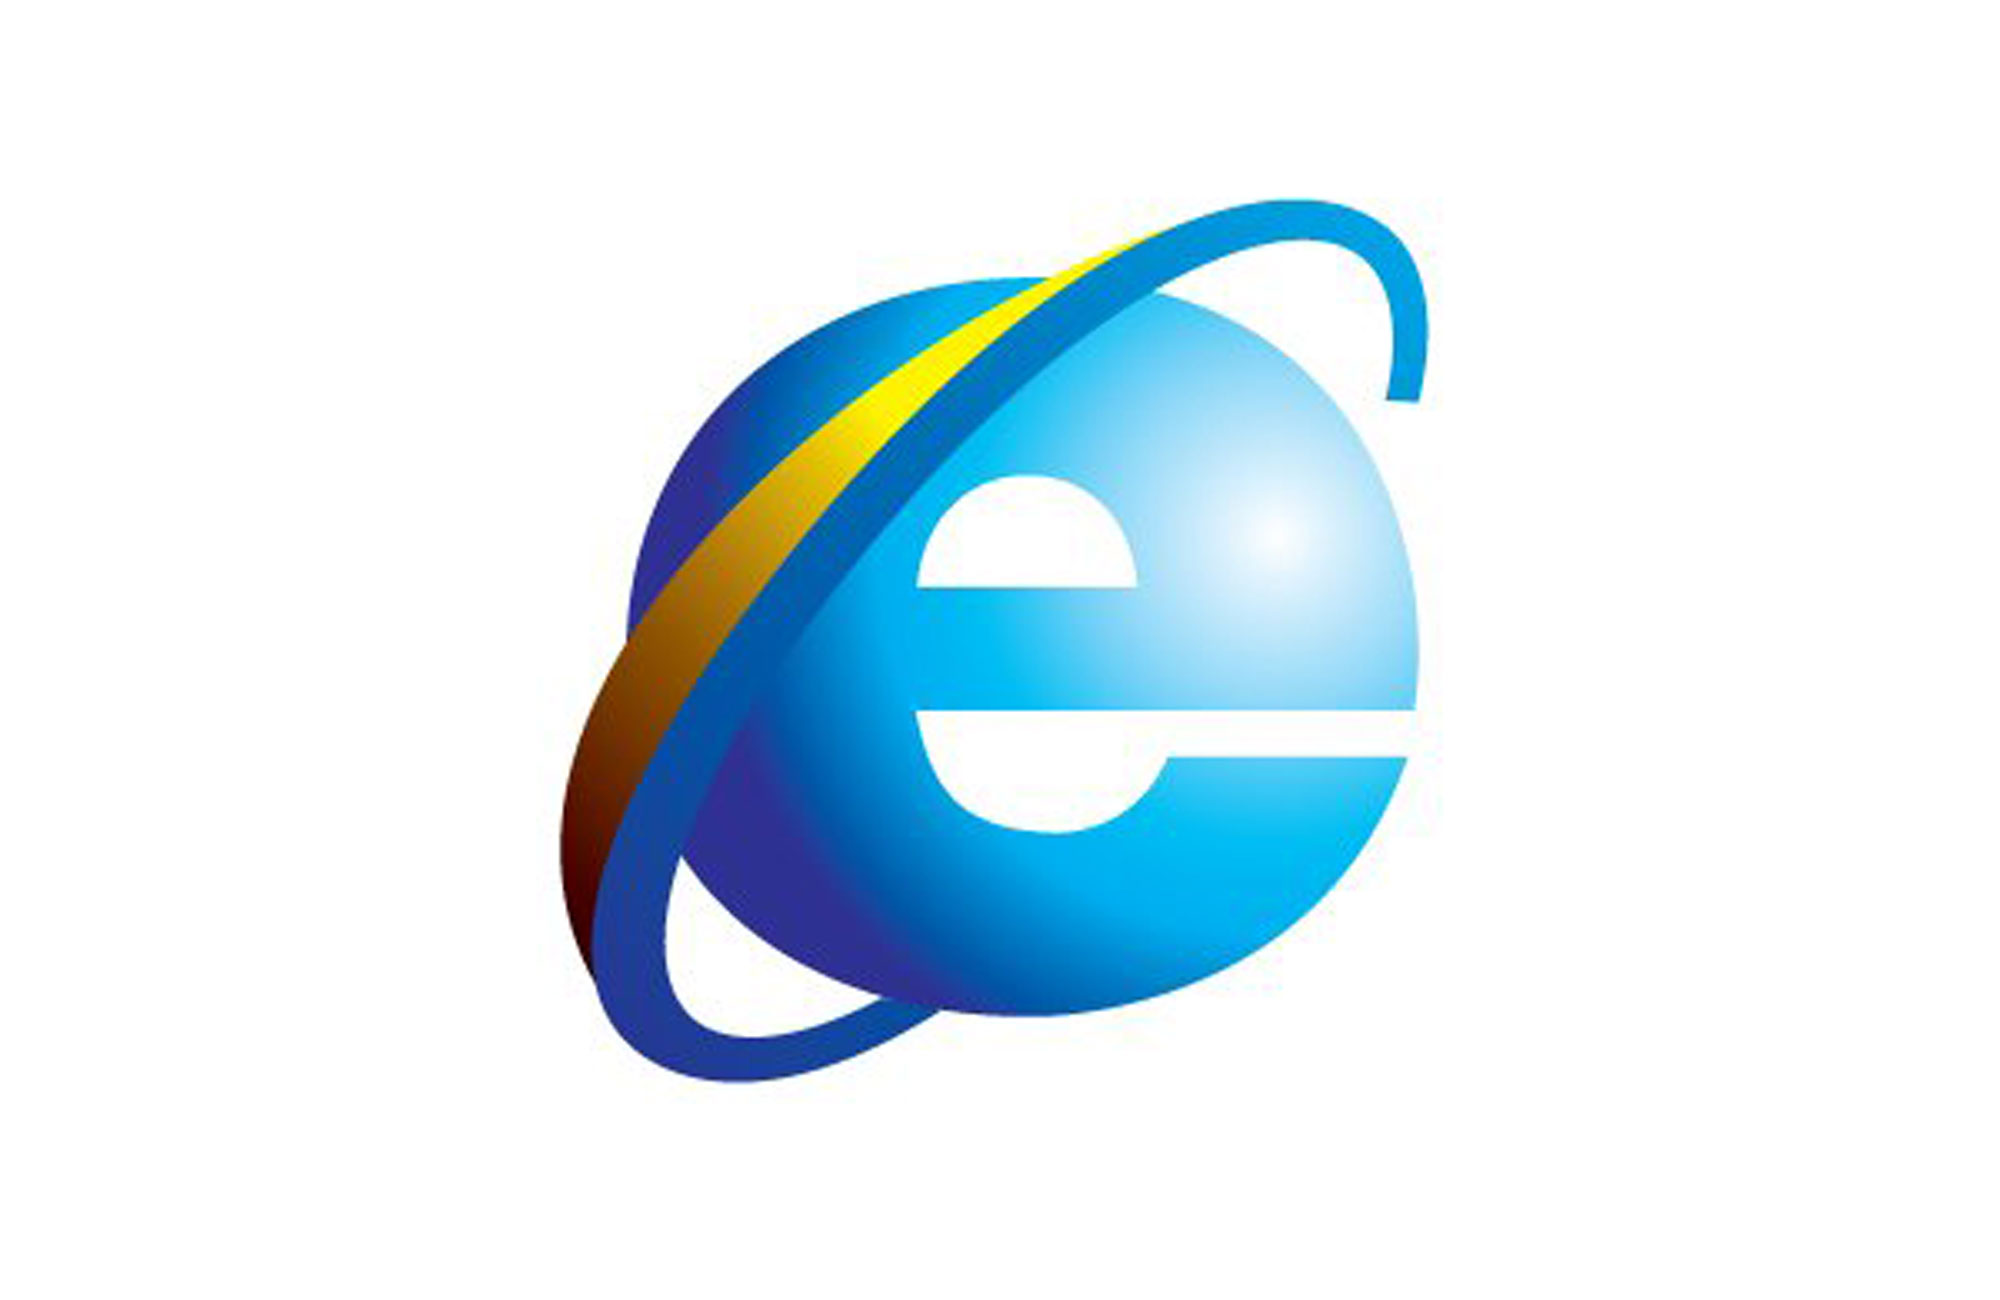 Internet explorer pictures showing red x